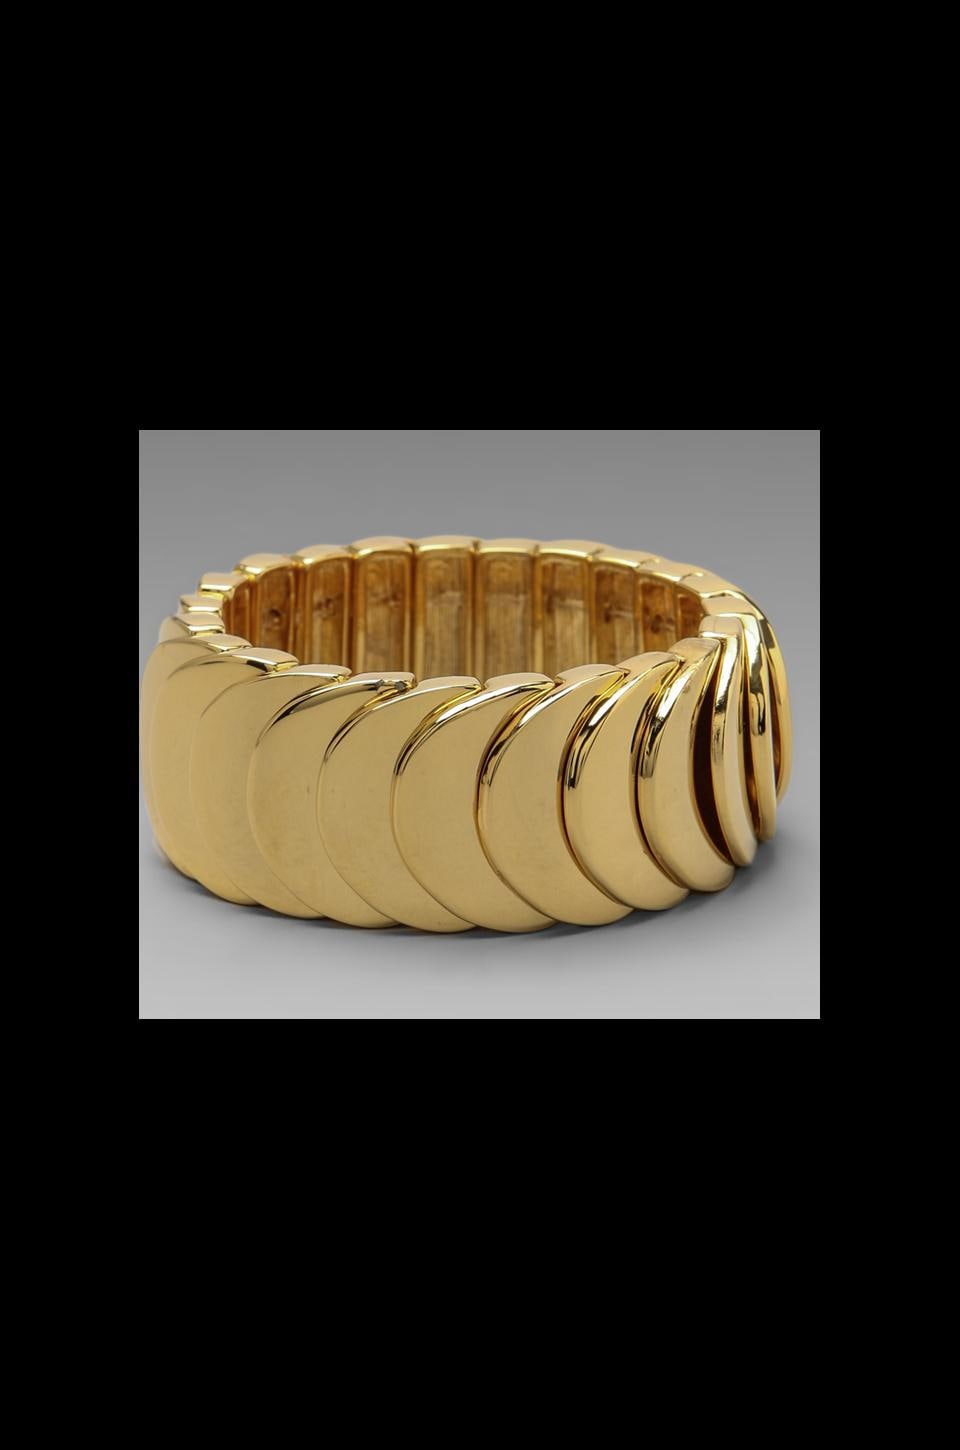 Kenneth Jay Lane Stretch Bracelet in Polished Gold